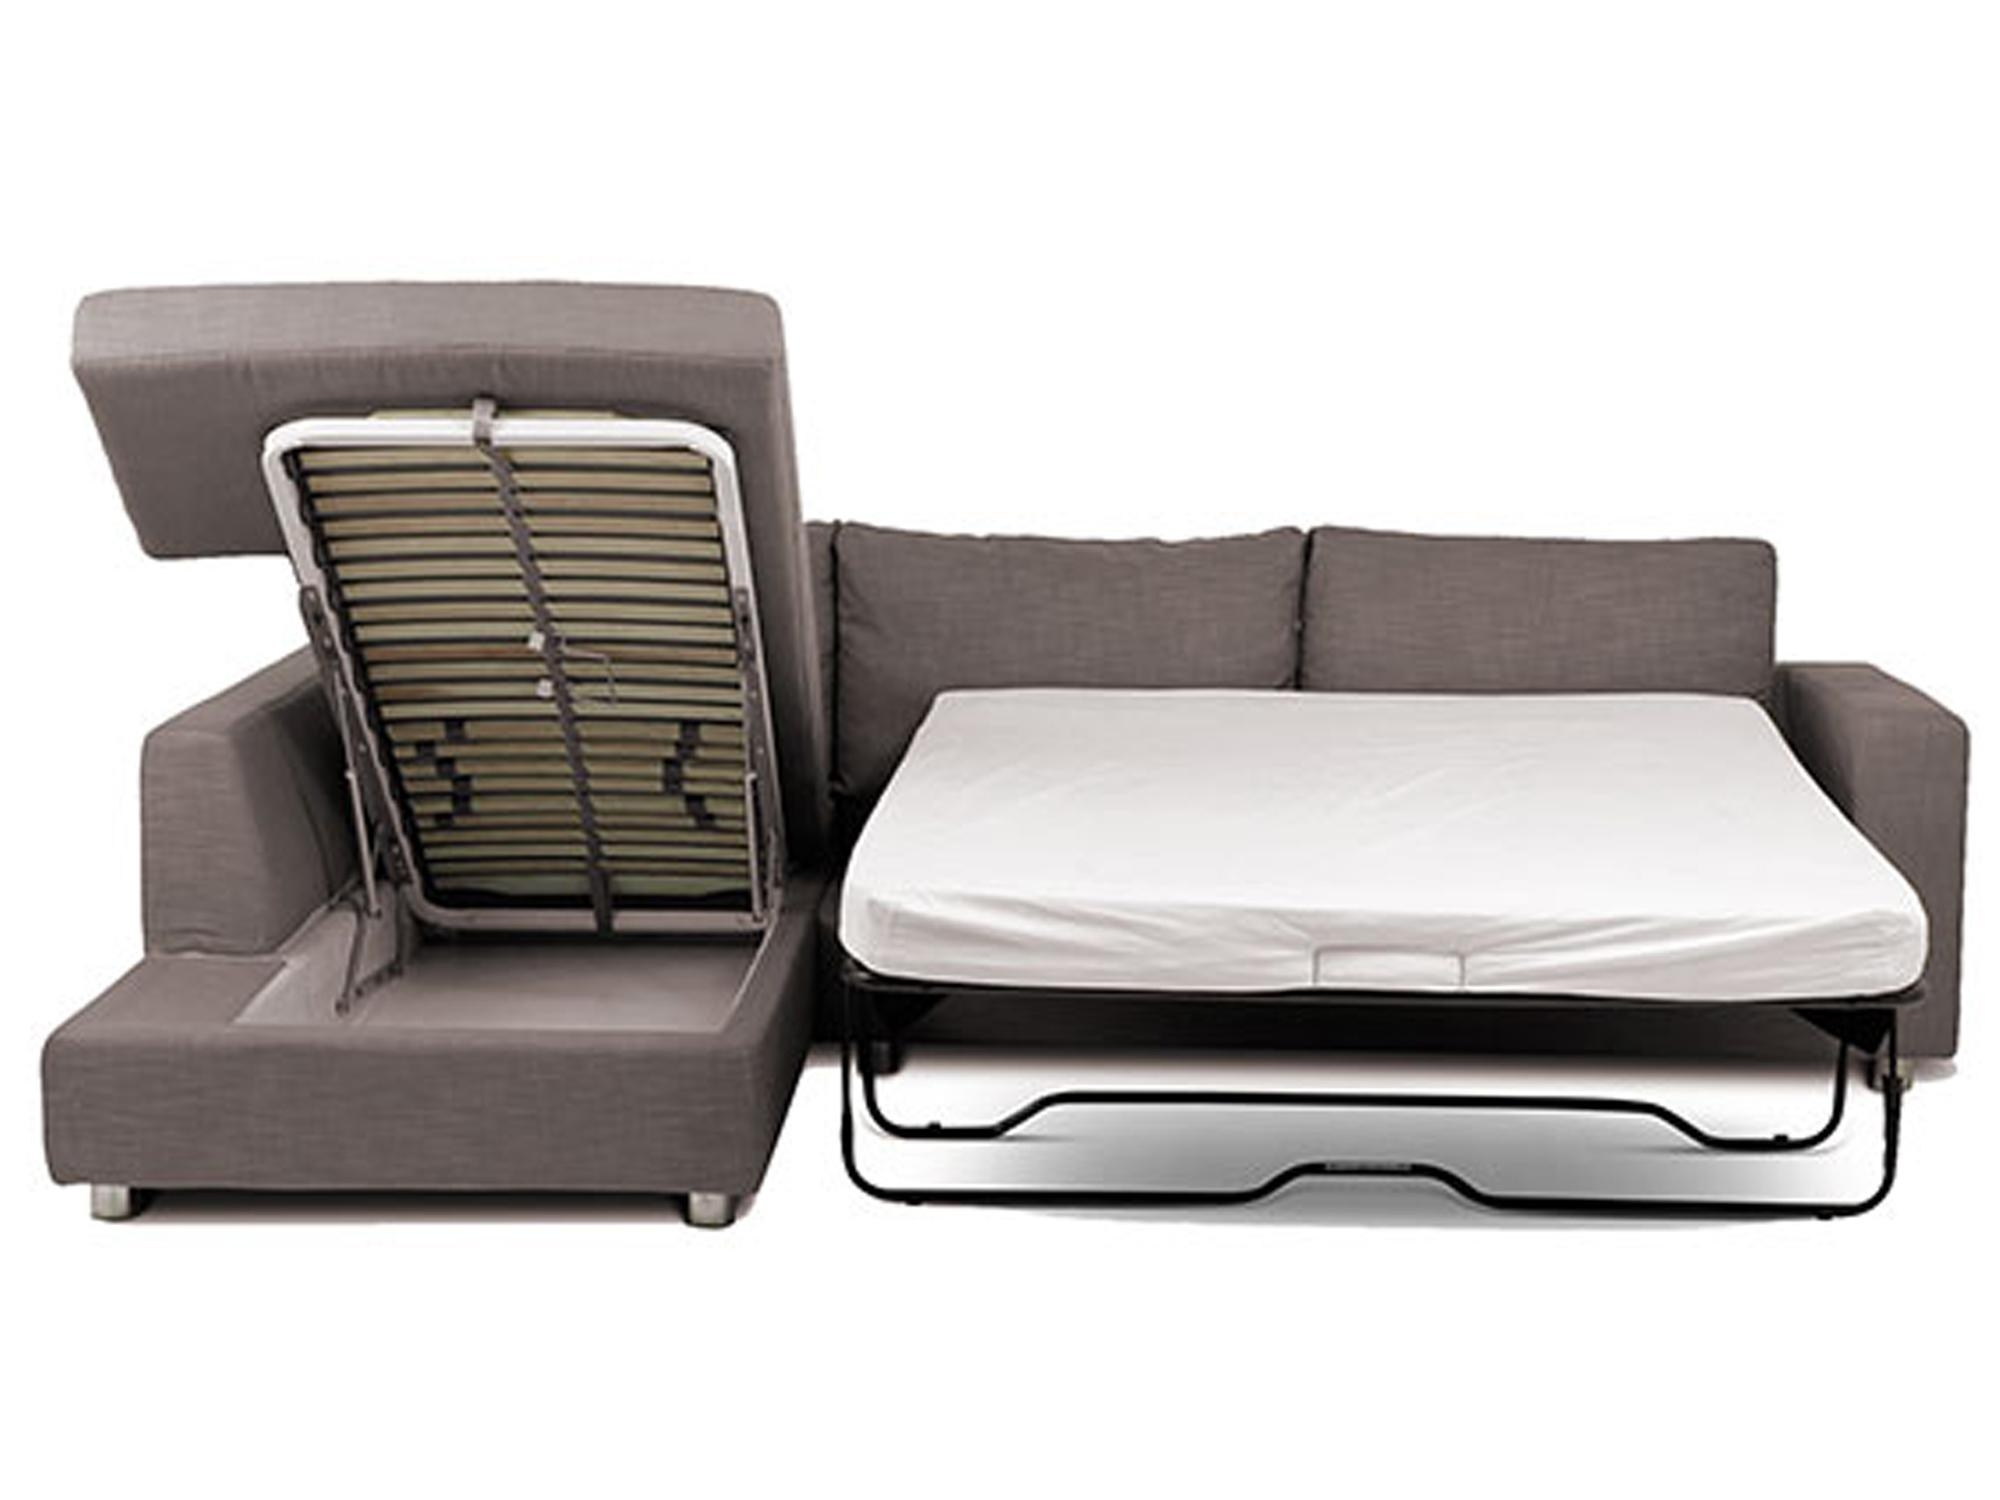 Sofas: Classic Meets Contemporary Chaise Sofa Bed For Ideal Living Pertaining To Sofa Beds With Chaise Lounge (Image 20 of 20)